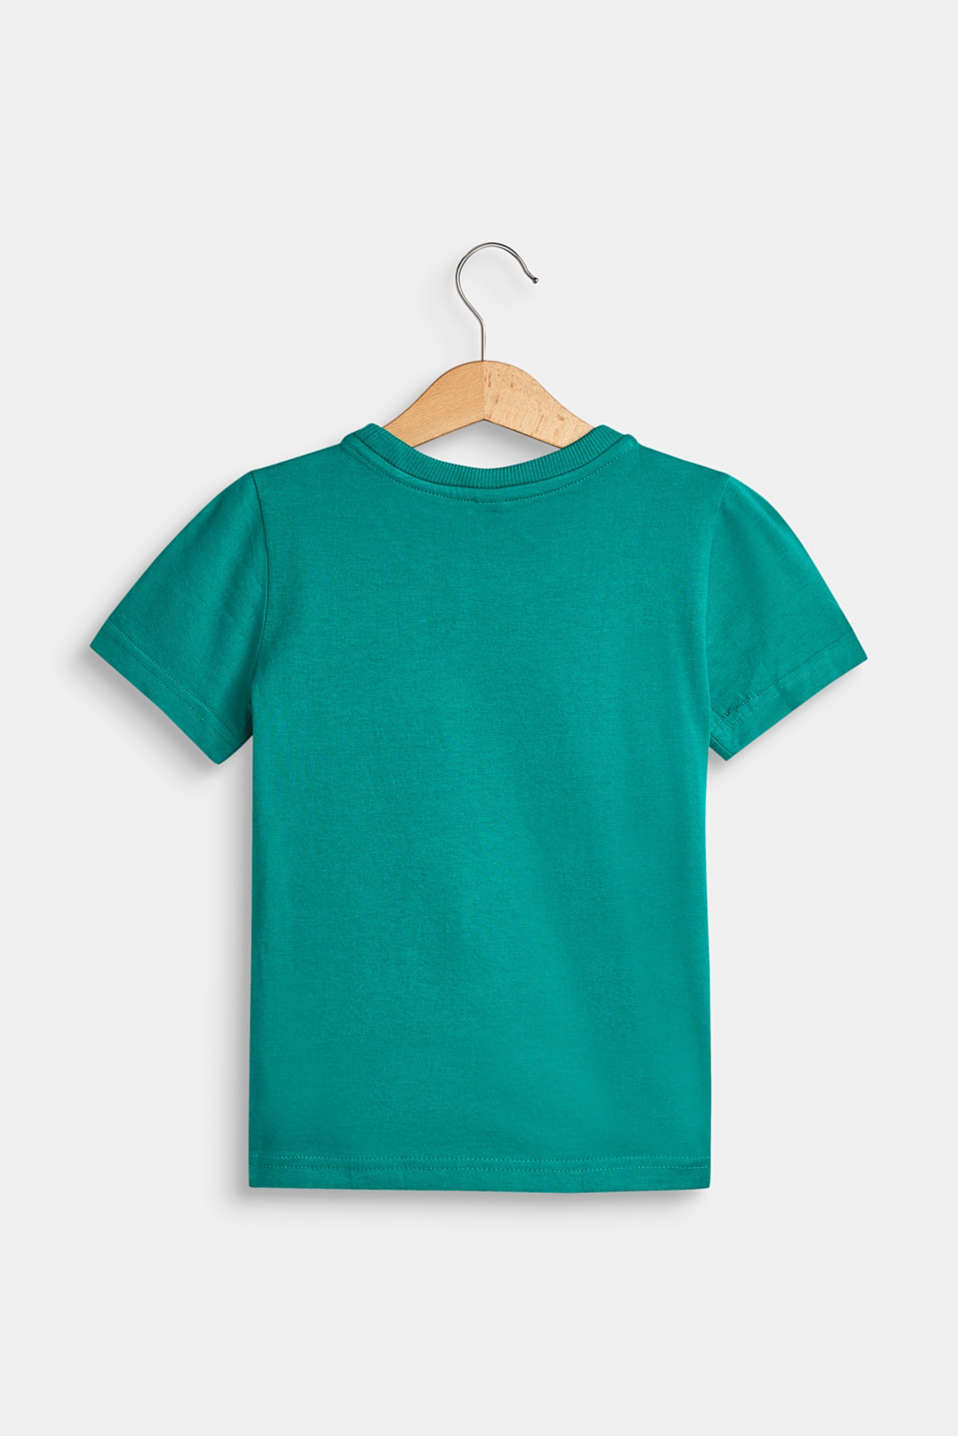 T-shirt with a motif pocket, 100% cotton, GREEN, detail image number 1